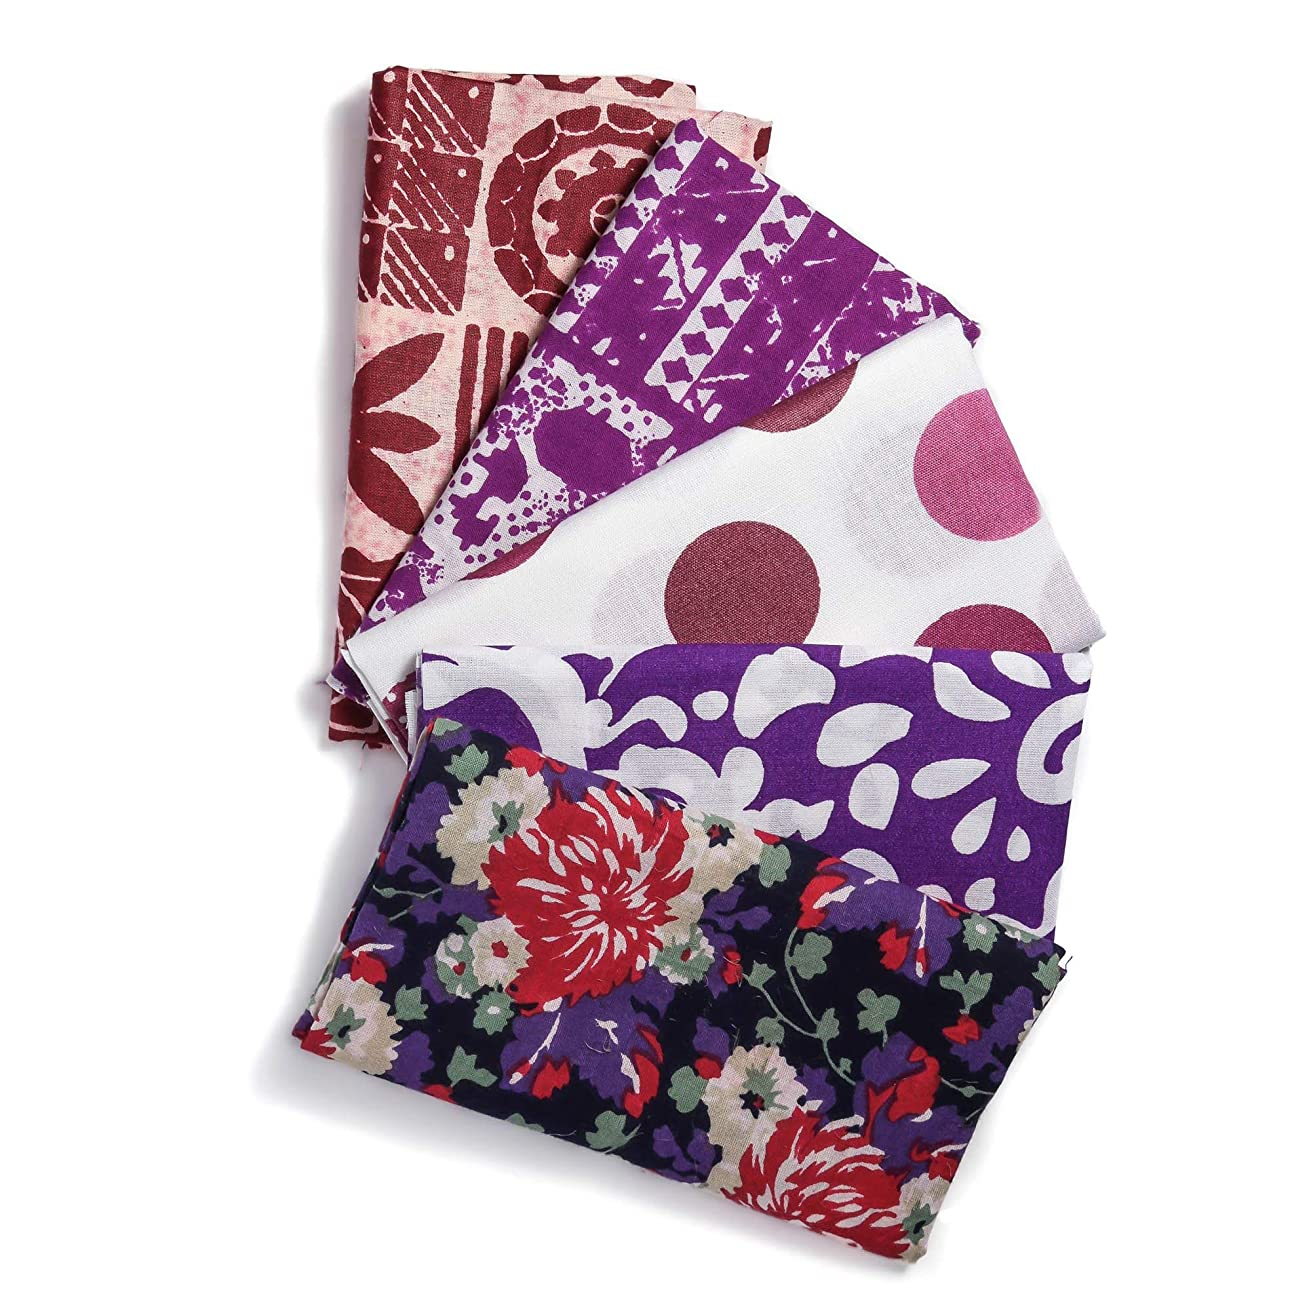 Bachaaya | Freedom Squares | Fat Quarters 5 Piece Bundle | Cotton Fabric for Quilting, Sewing, Crafting, Bedding | 18 Inches X 21 Inches (46 X 53 Centimeters)